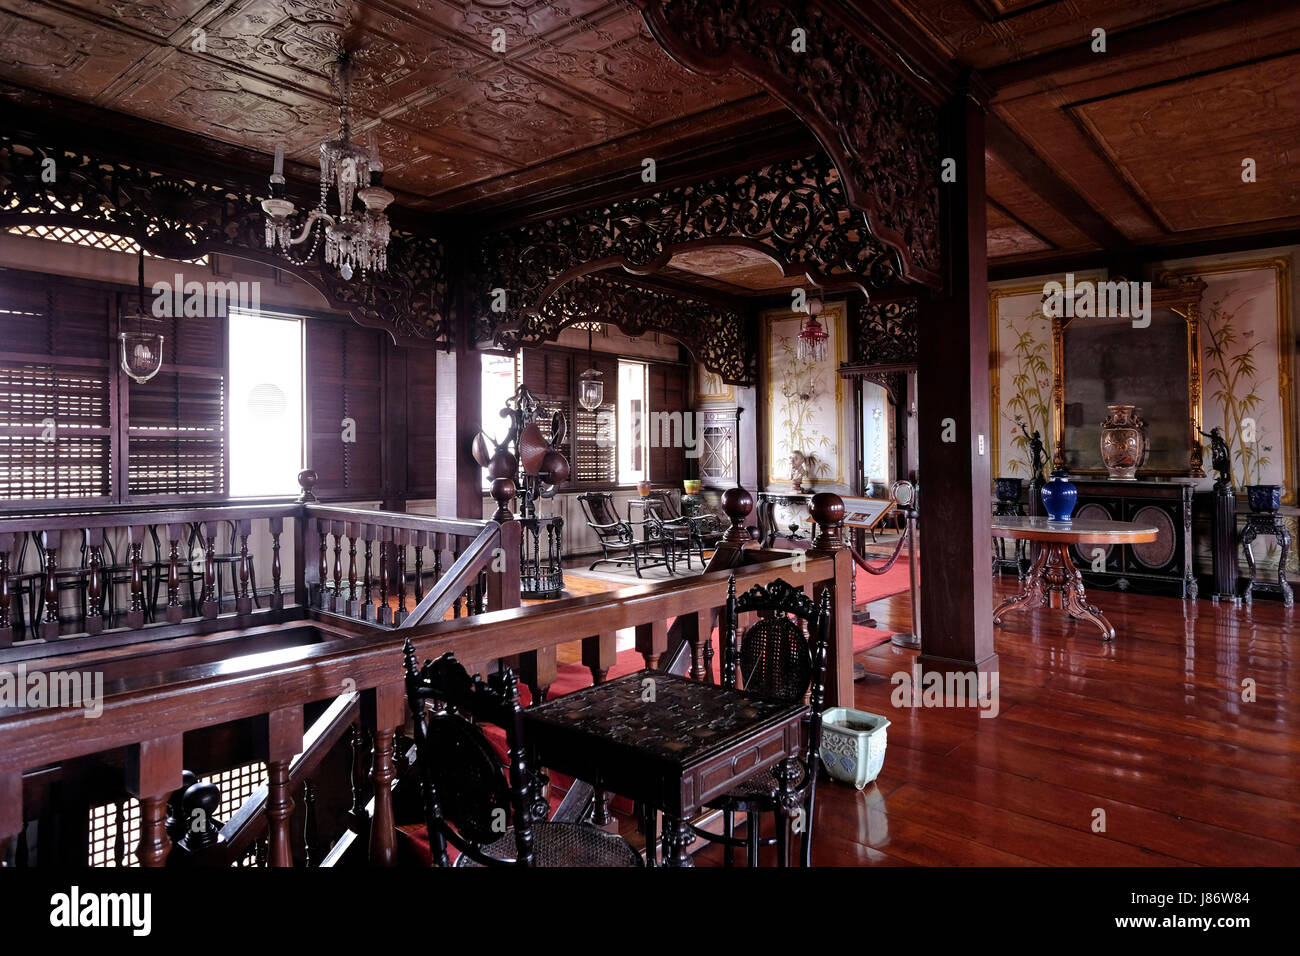 Interior Of Casa Manila Containing Late 19th Century And Early 20th Furniture Found In